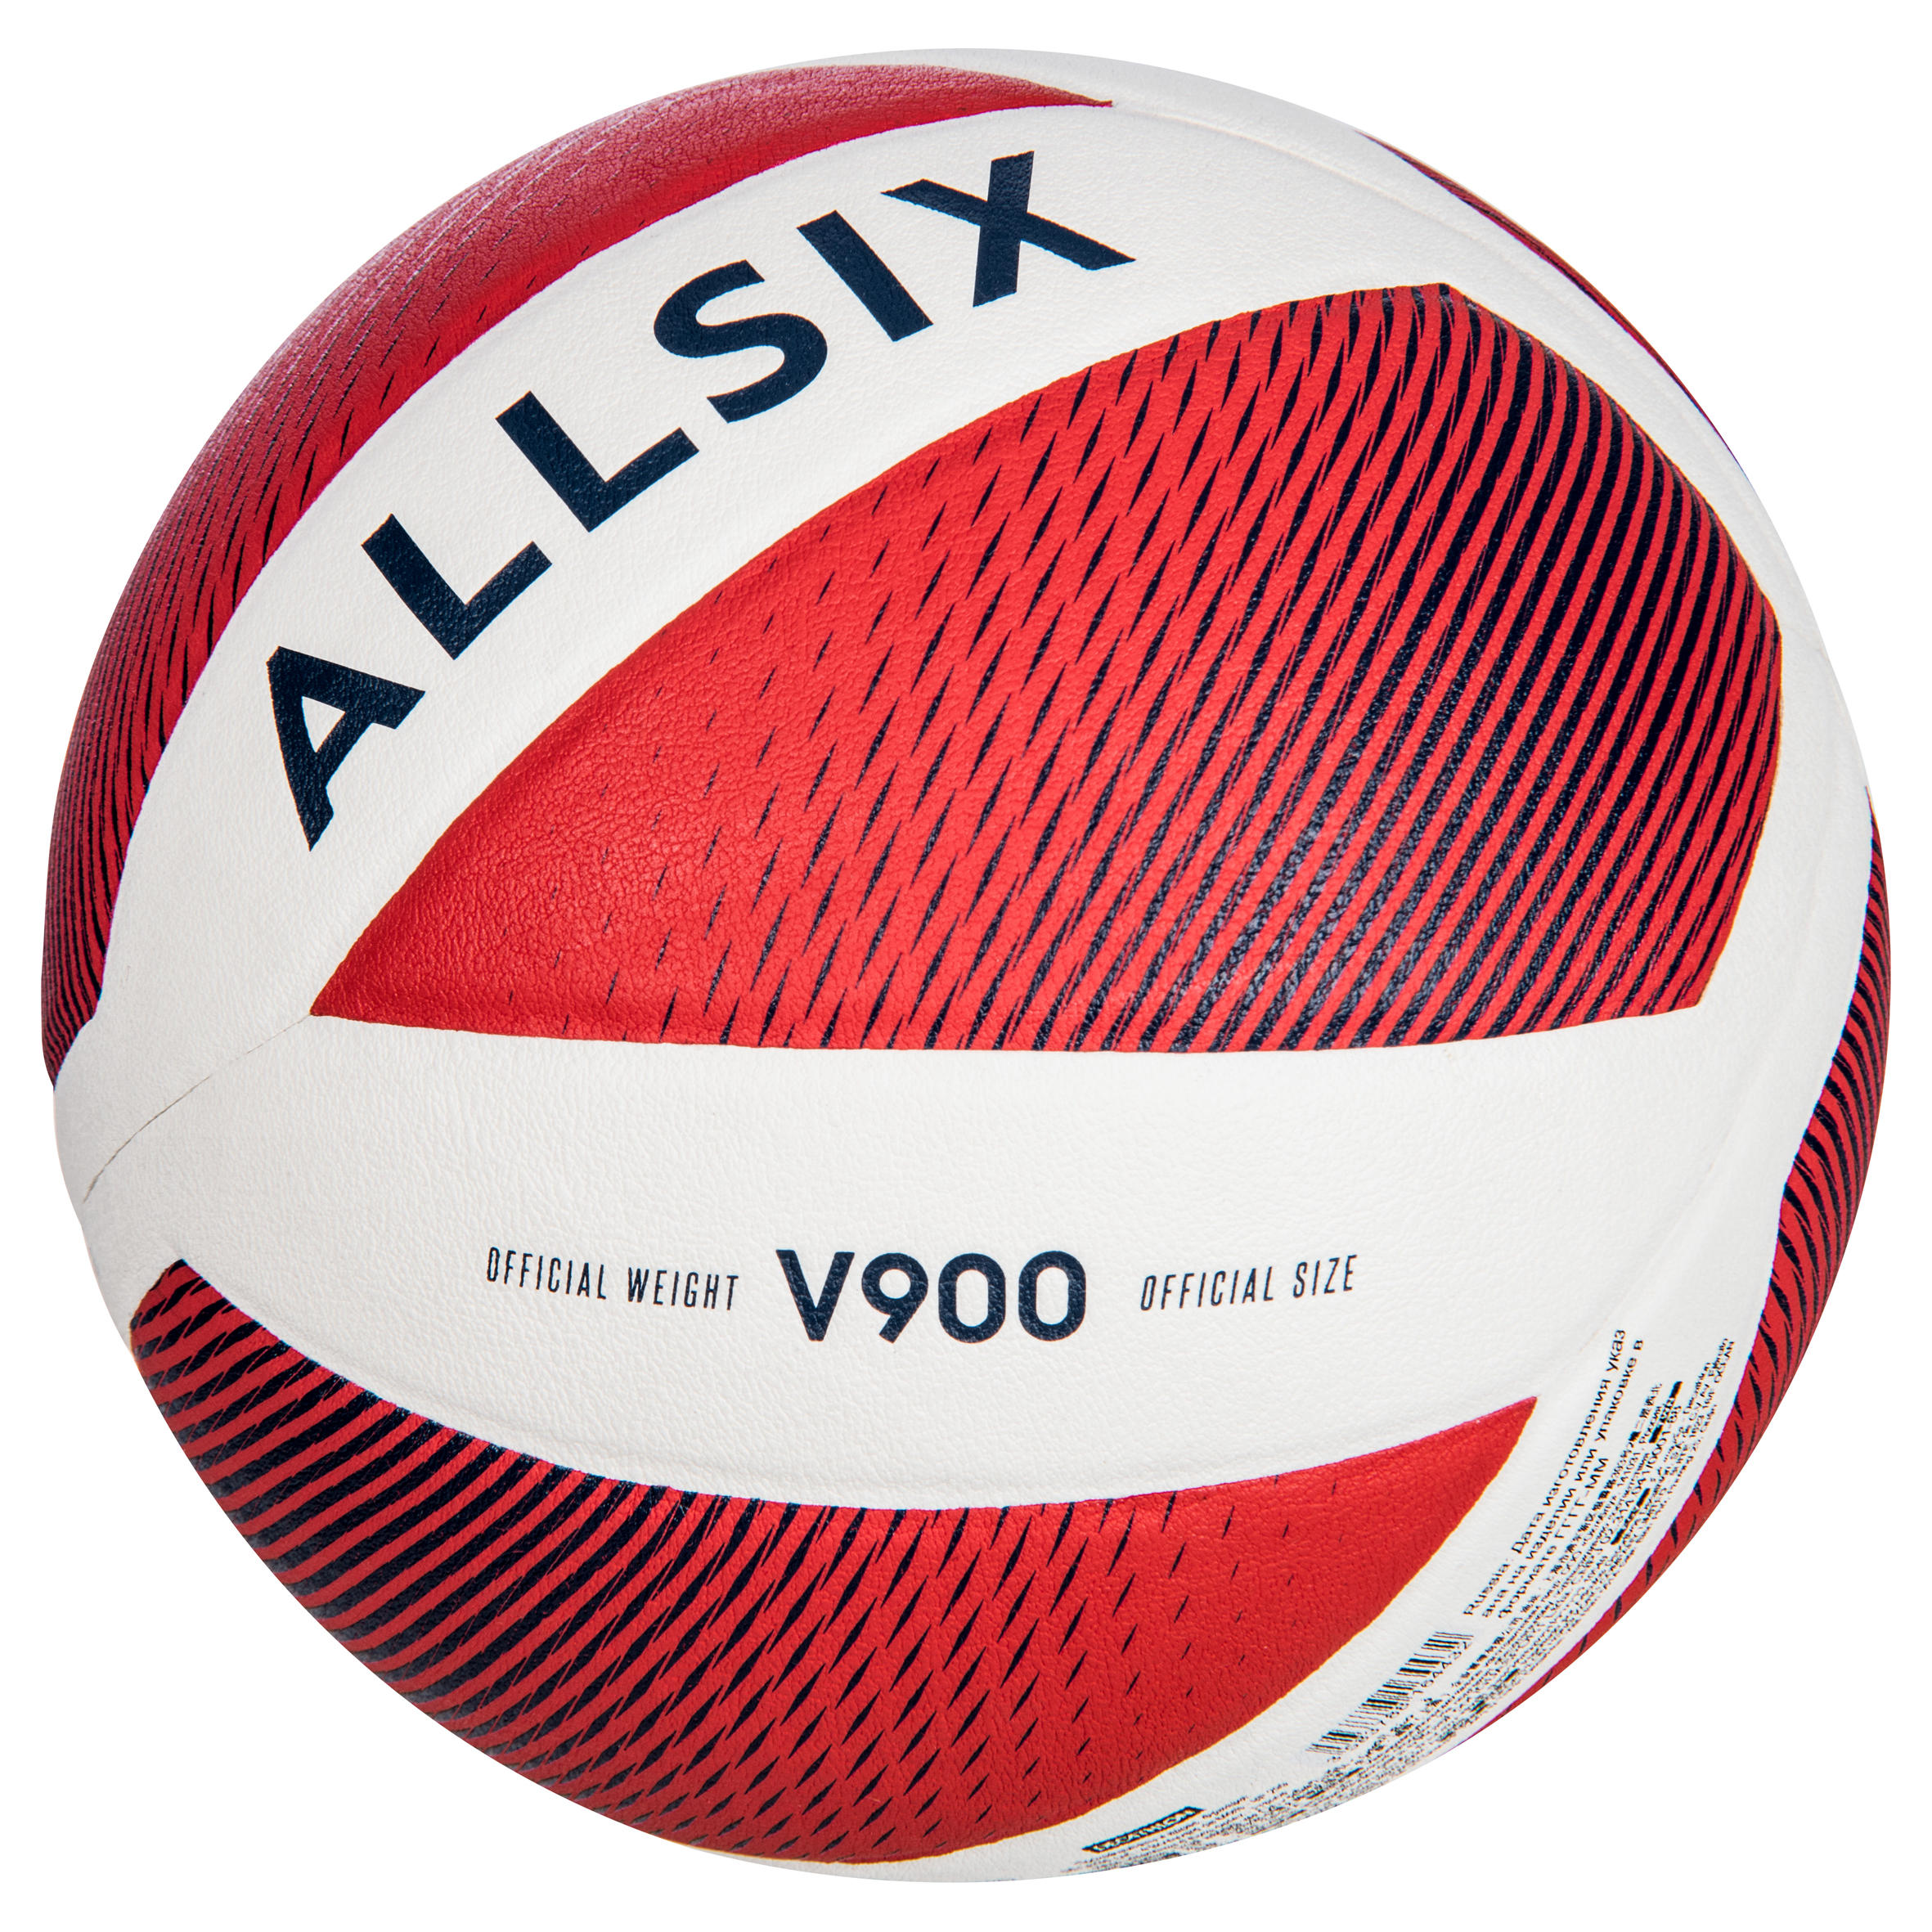 Minge volei V900 Alb-Roşu imagine